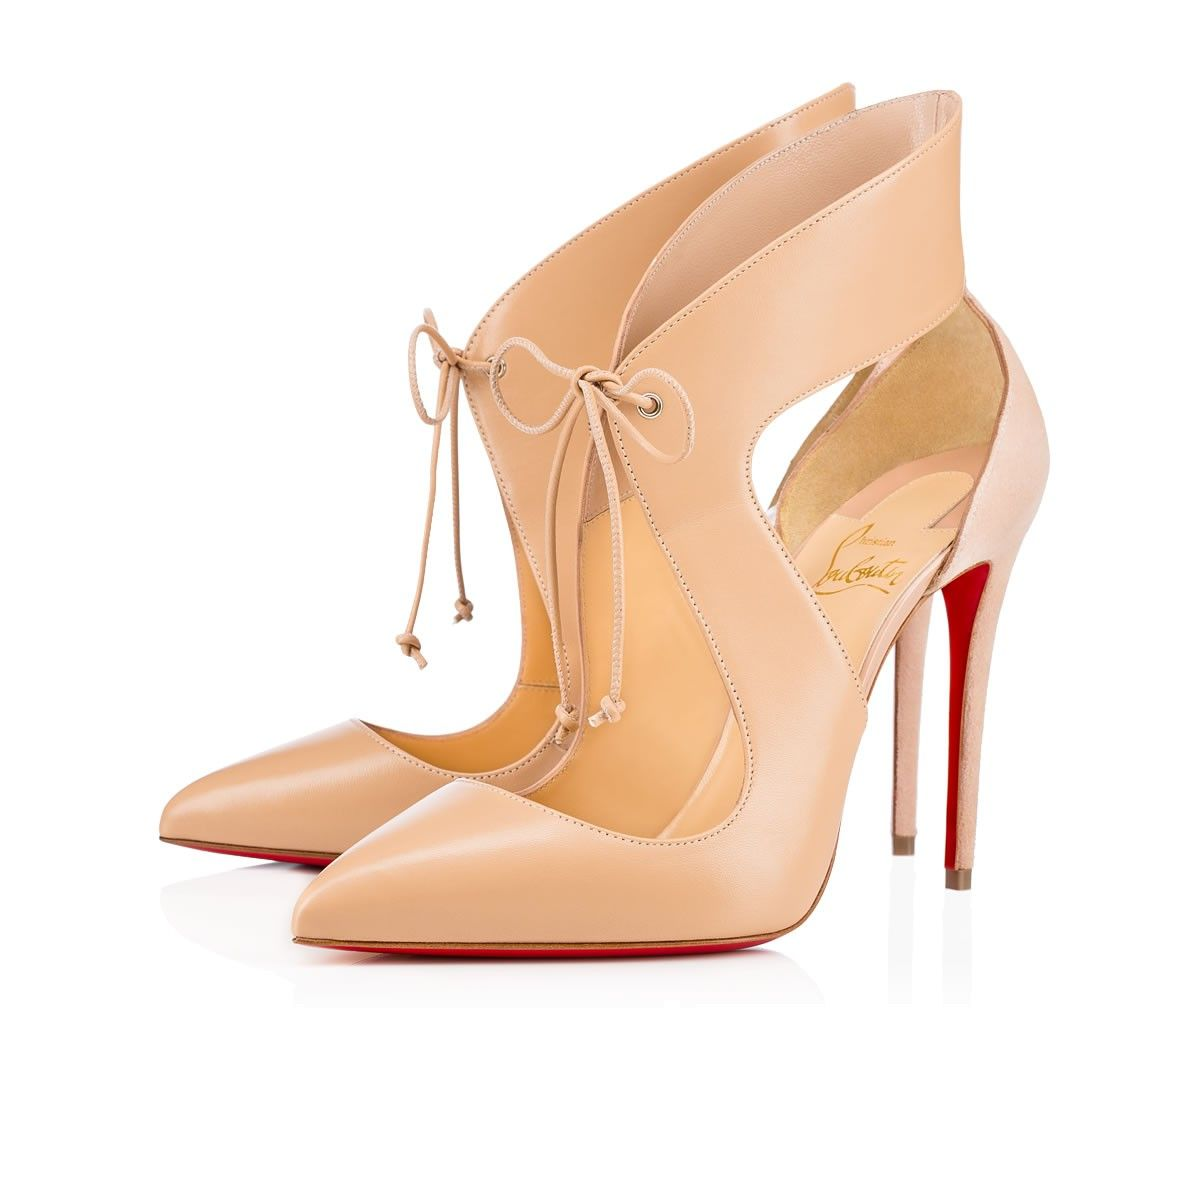 eeeae711ccb Shoes - Ferme Rouge - Christian Louboutin | Buy Me Things and Tell ...